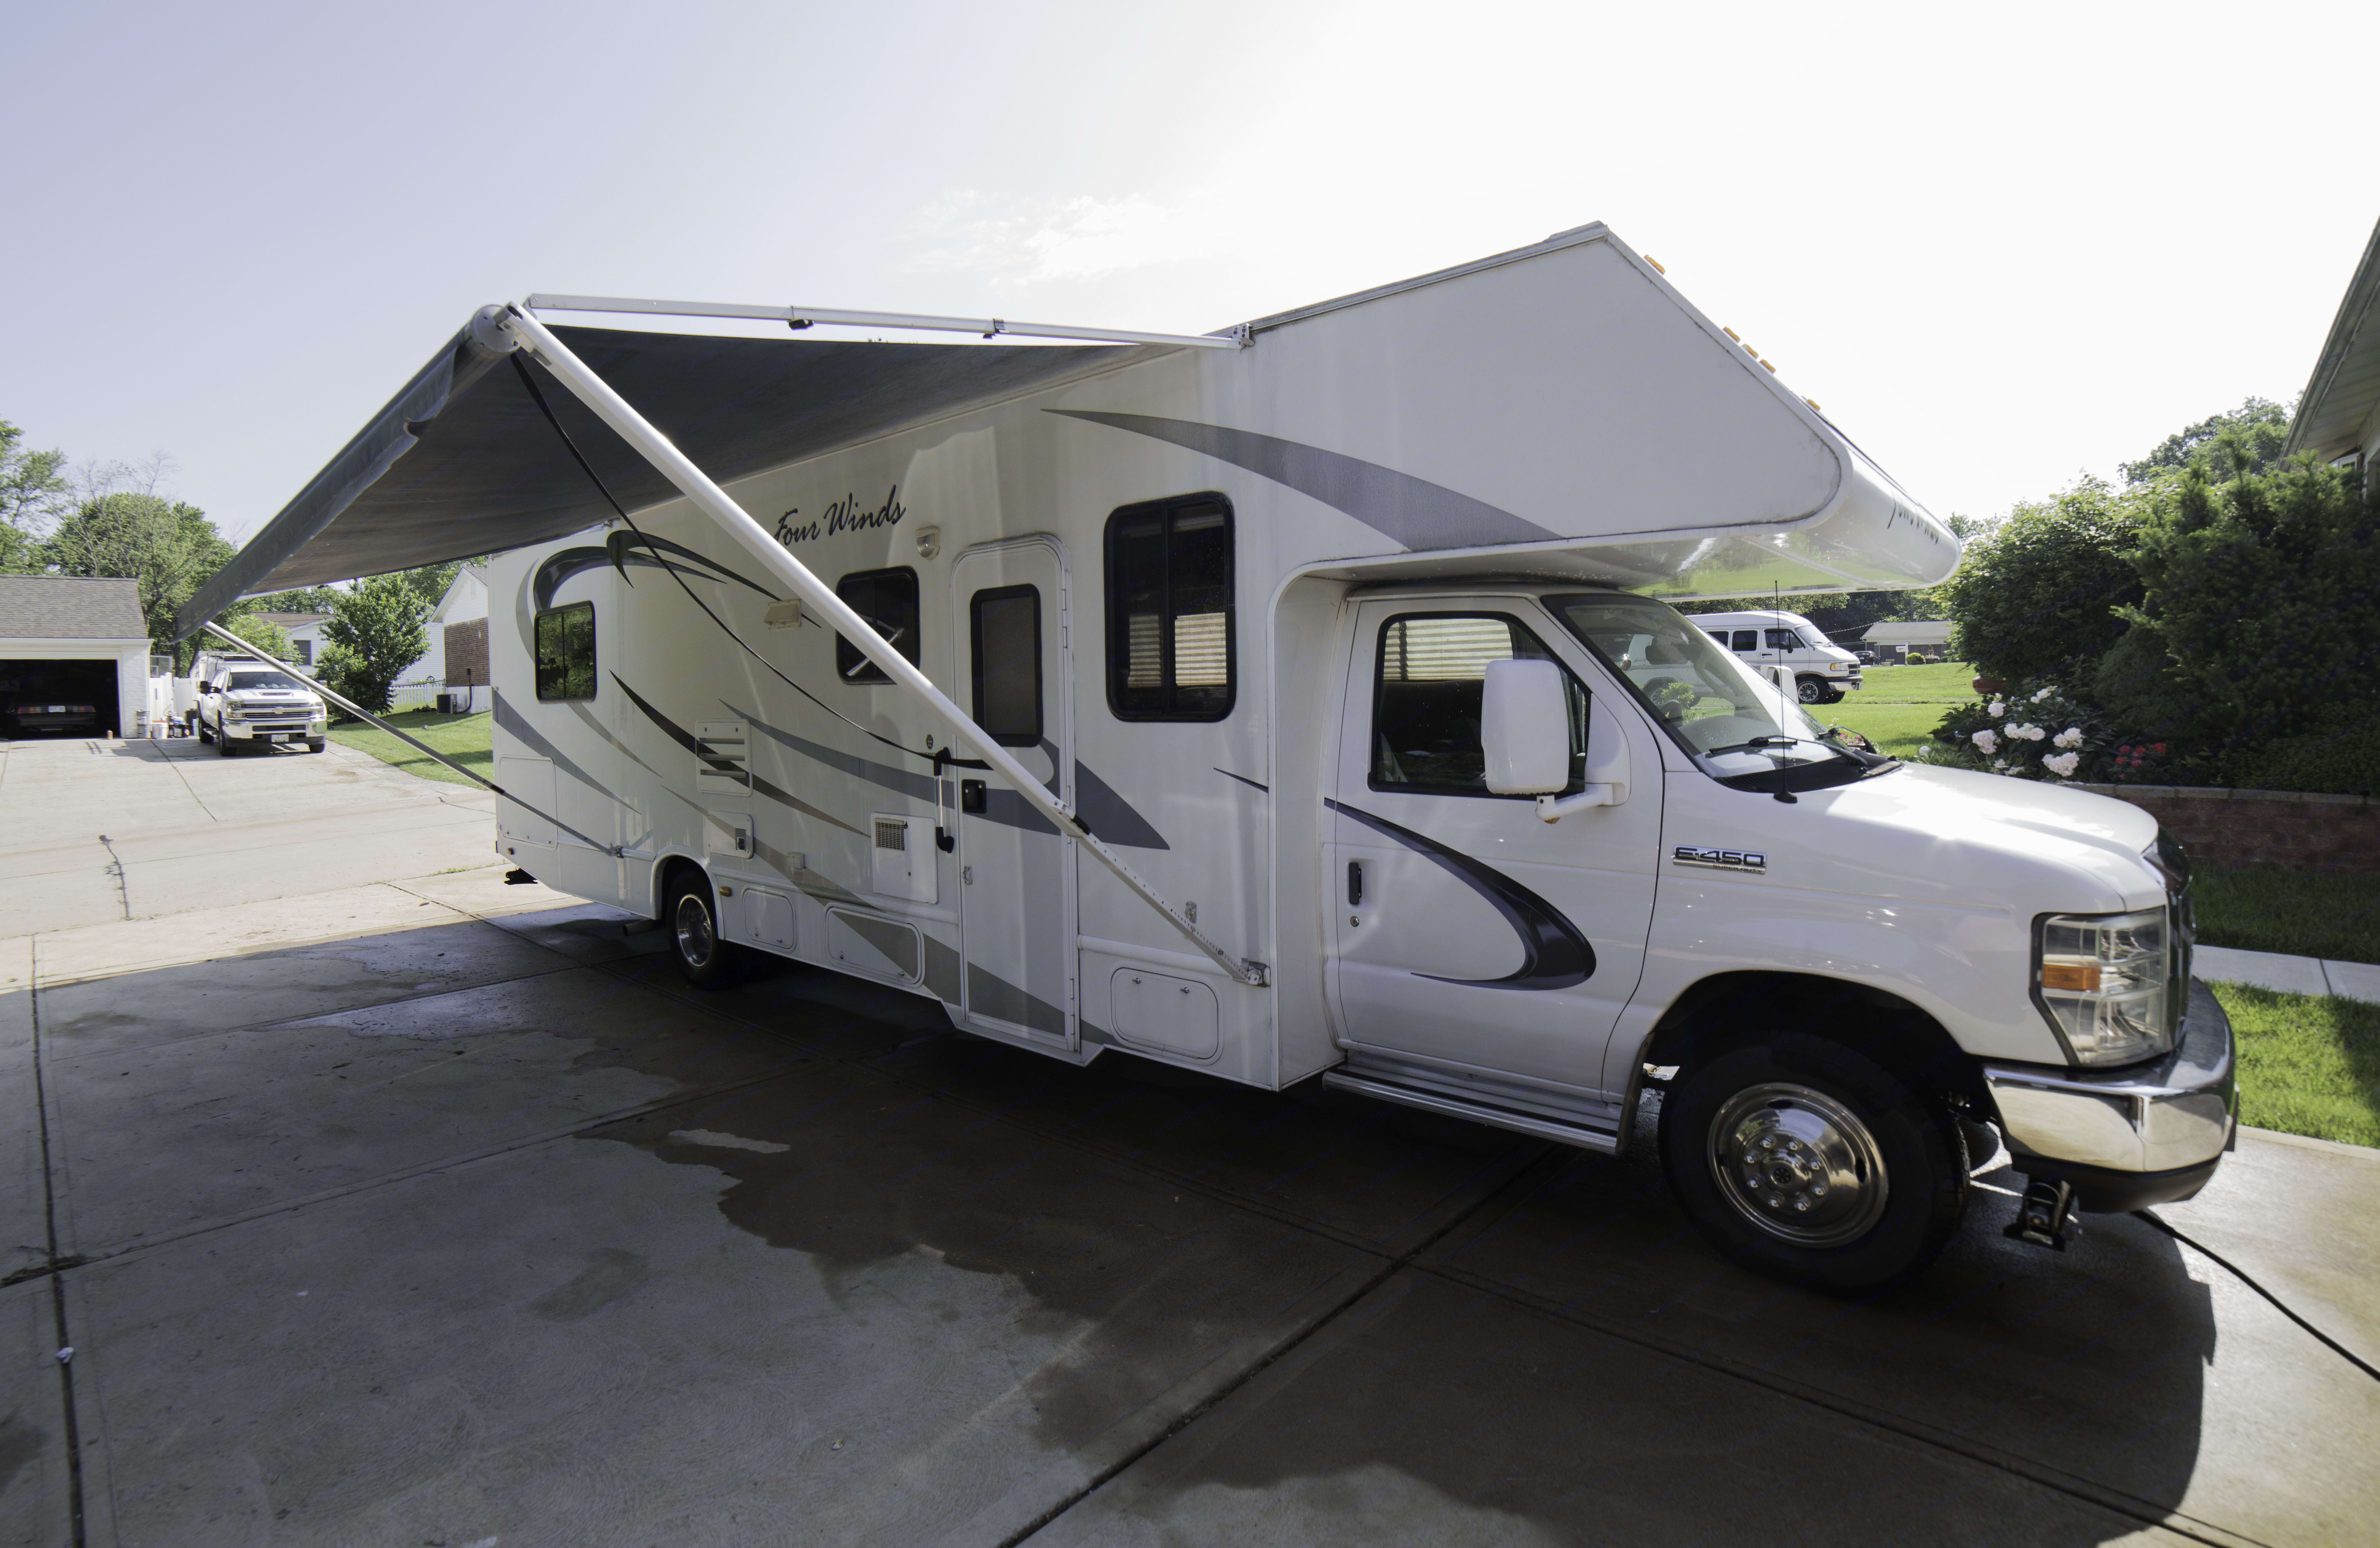 Right side view with awning deployed. Thor Motor Coach Four Winds 2009